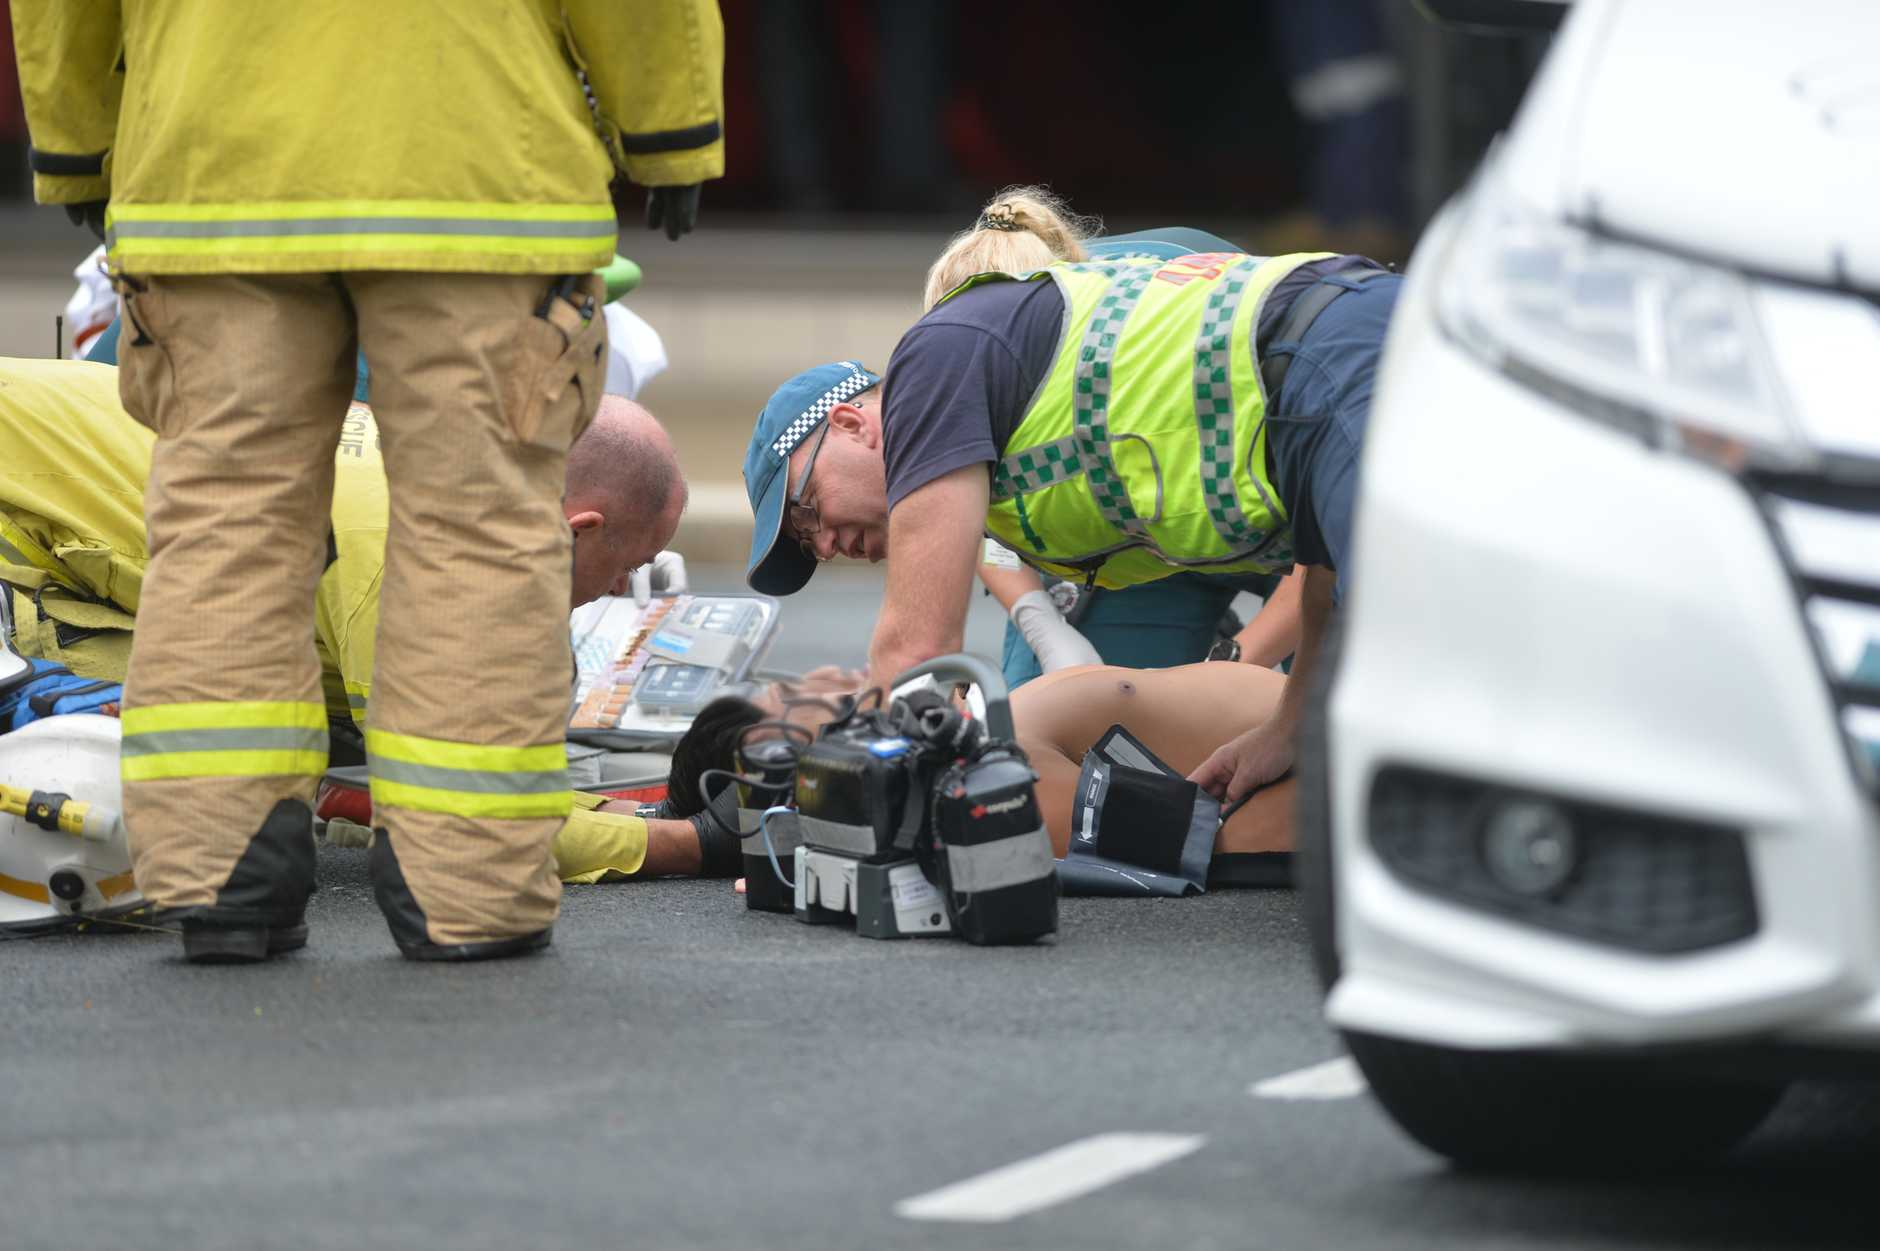 A man was treated by paramedics after a crash in the Mackay CBD